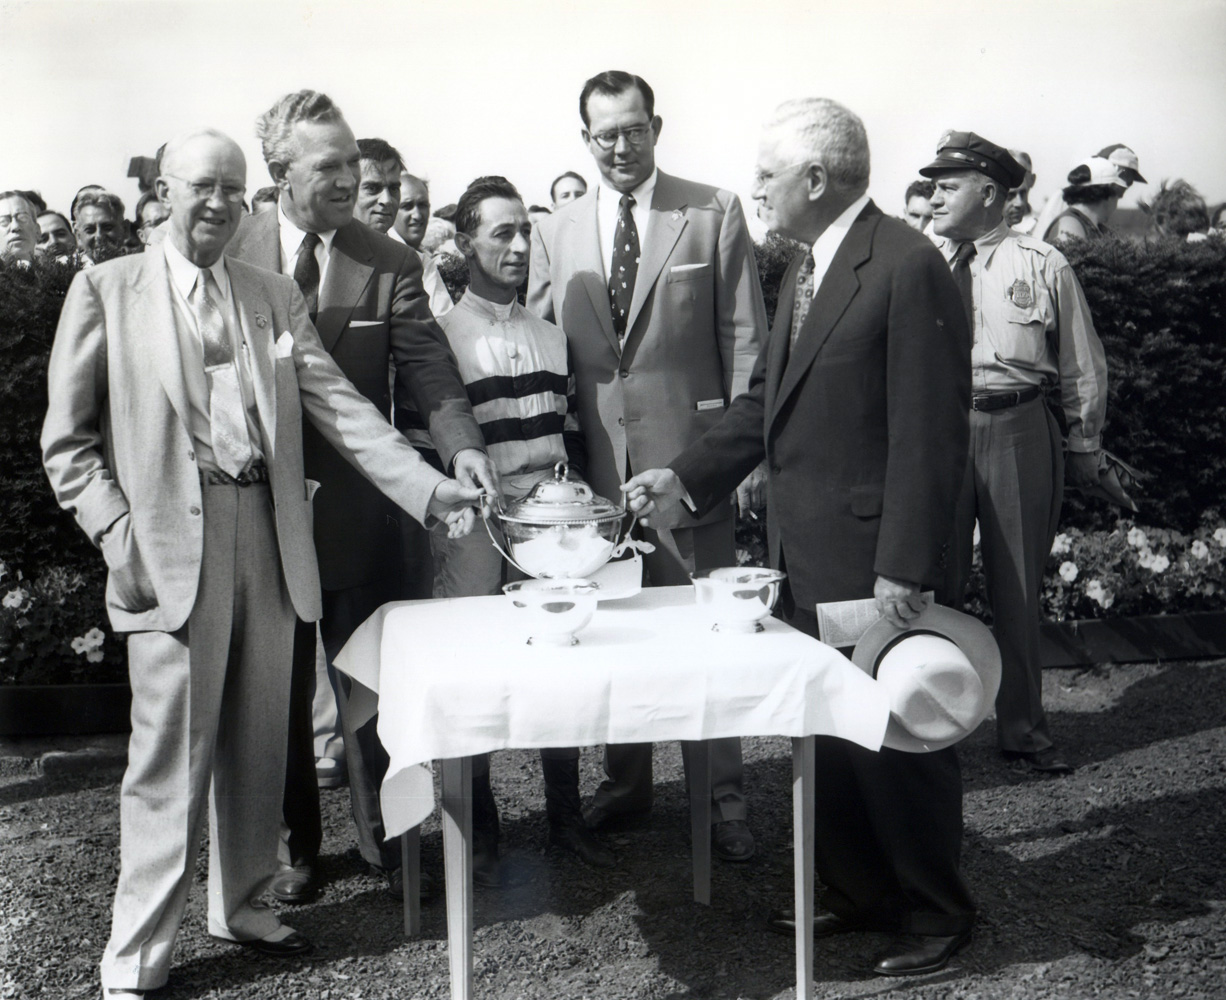 Jockey Eddie Arcaro and trainer Eddie Neloy join others in a post-victory trophy presentation (Keeneland Library Morgan Collection/Museum Collection)